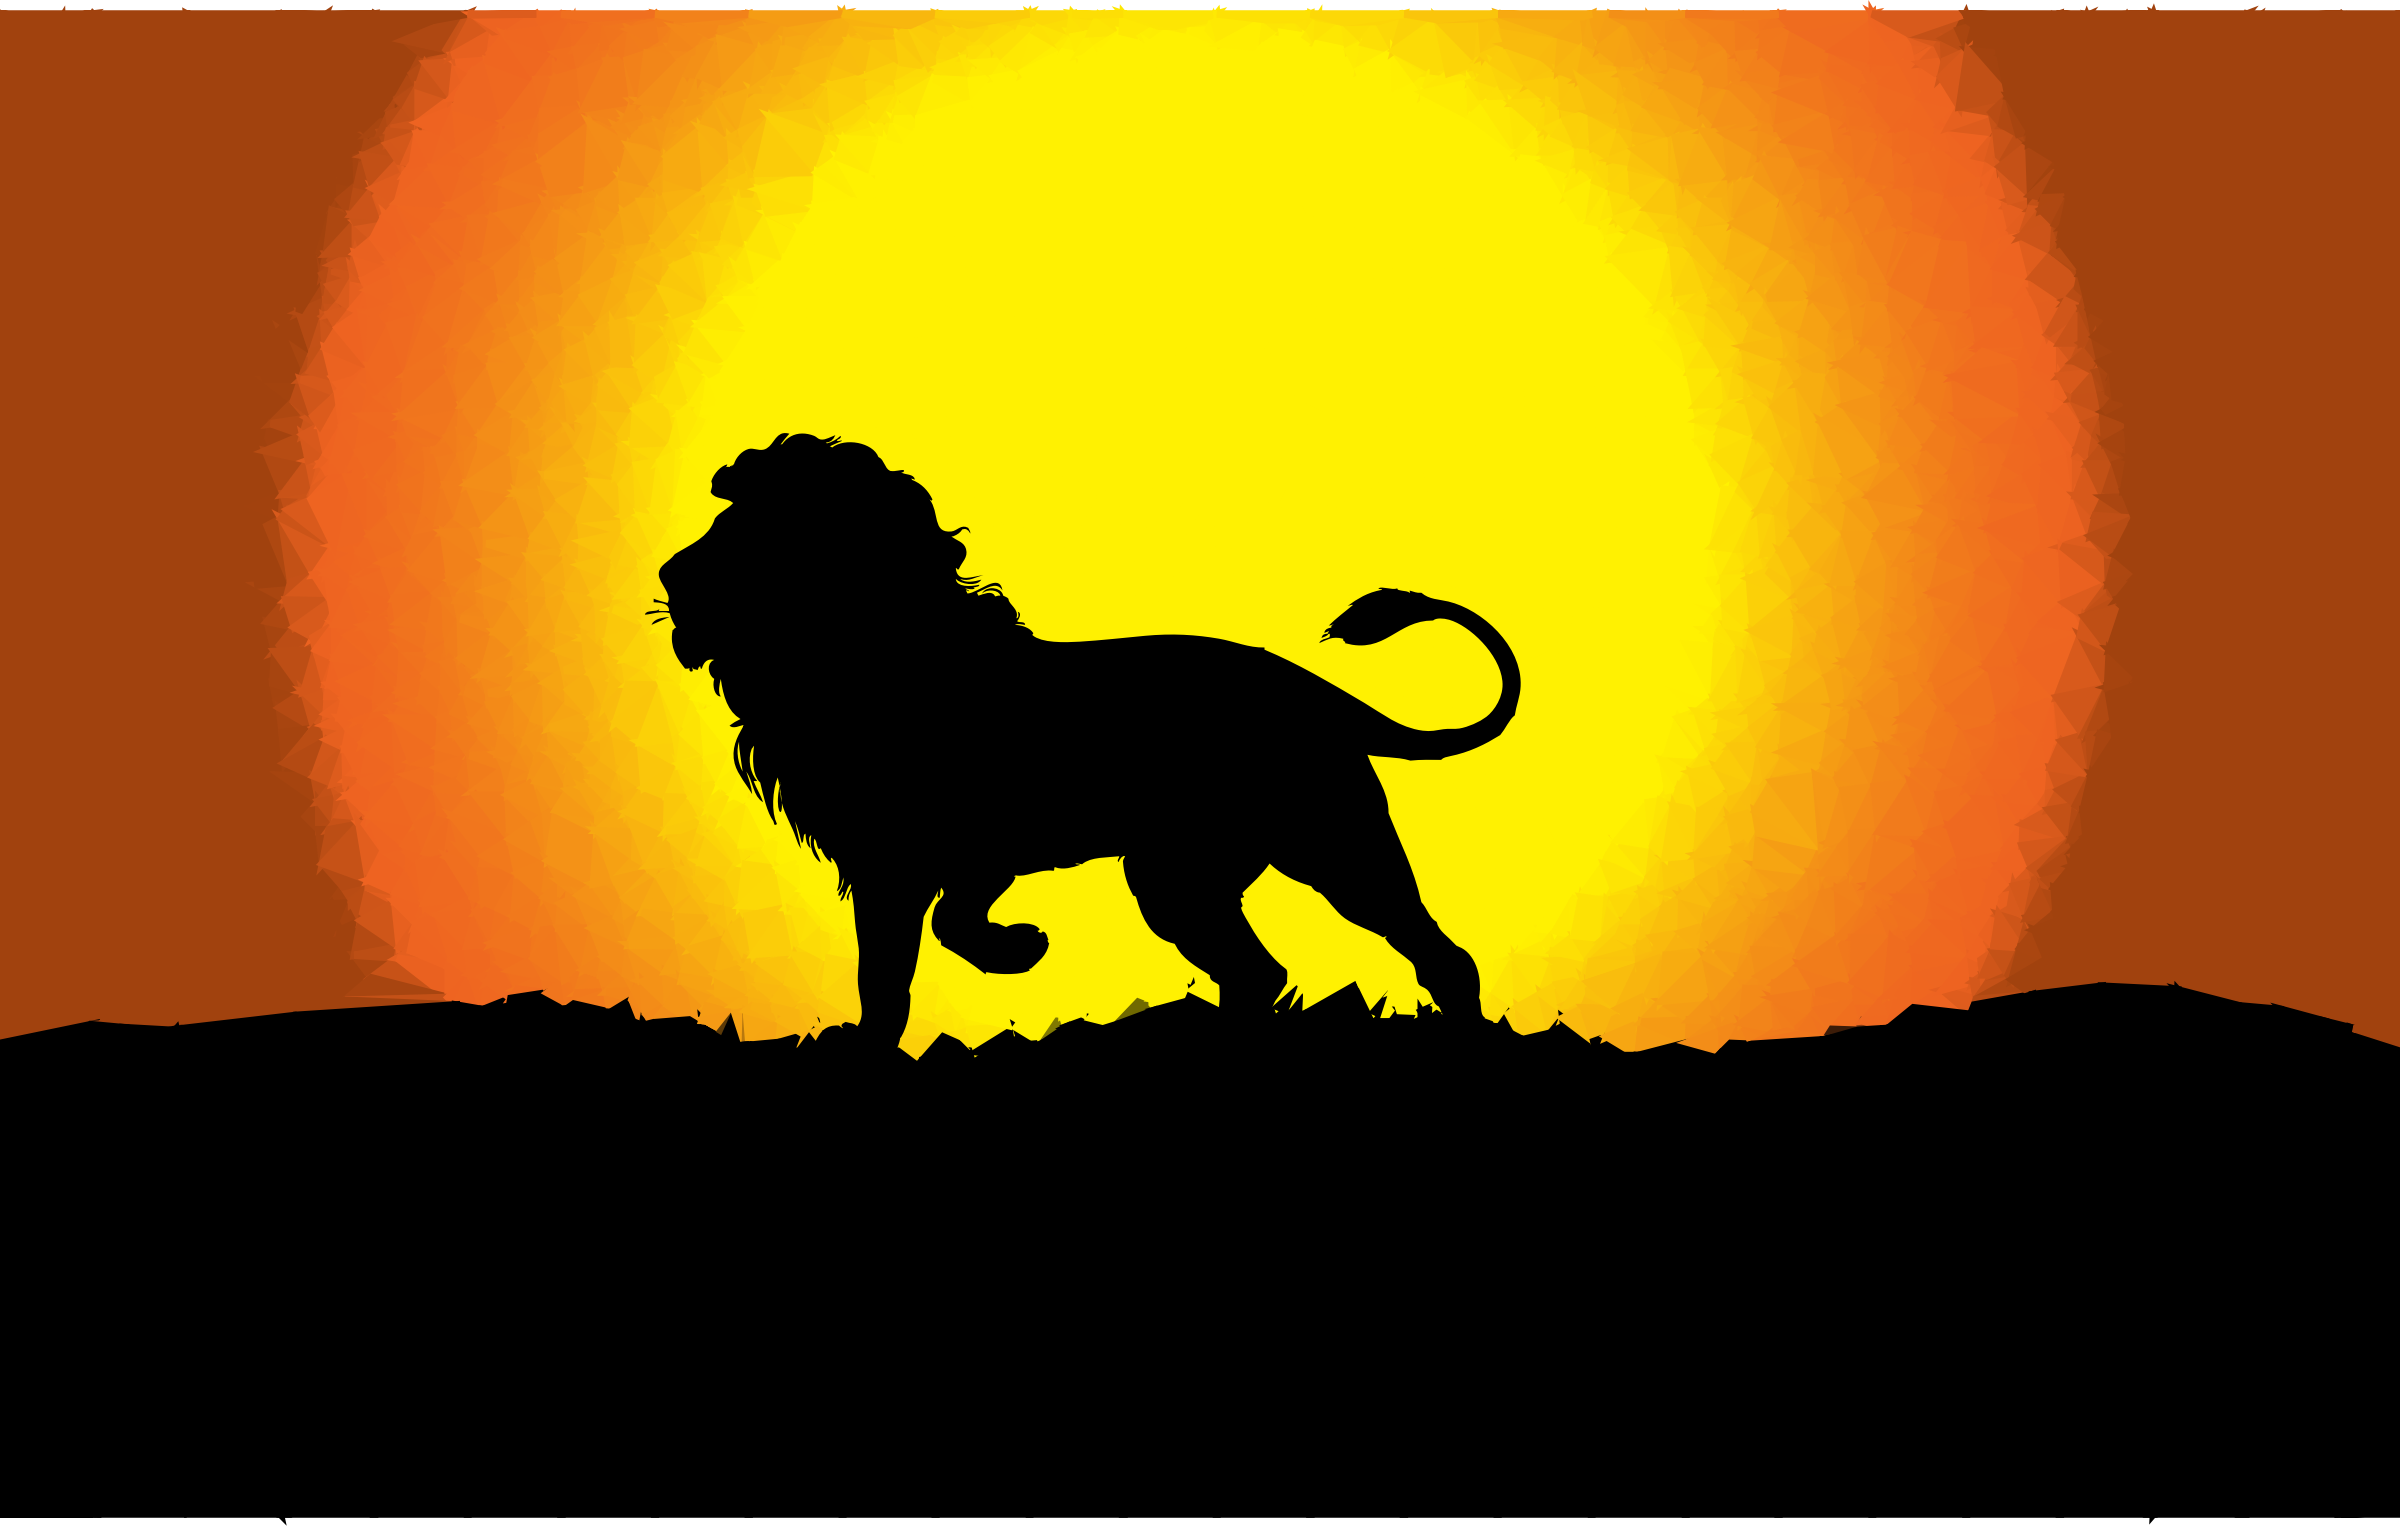 Low Poly Dusk Lion Silhouette by GDJ